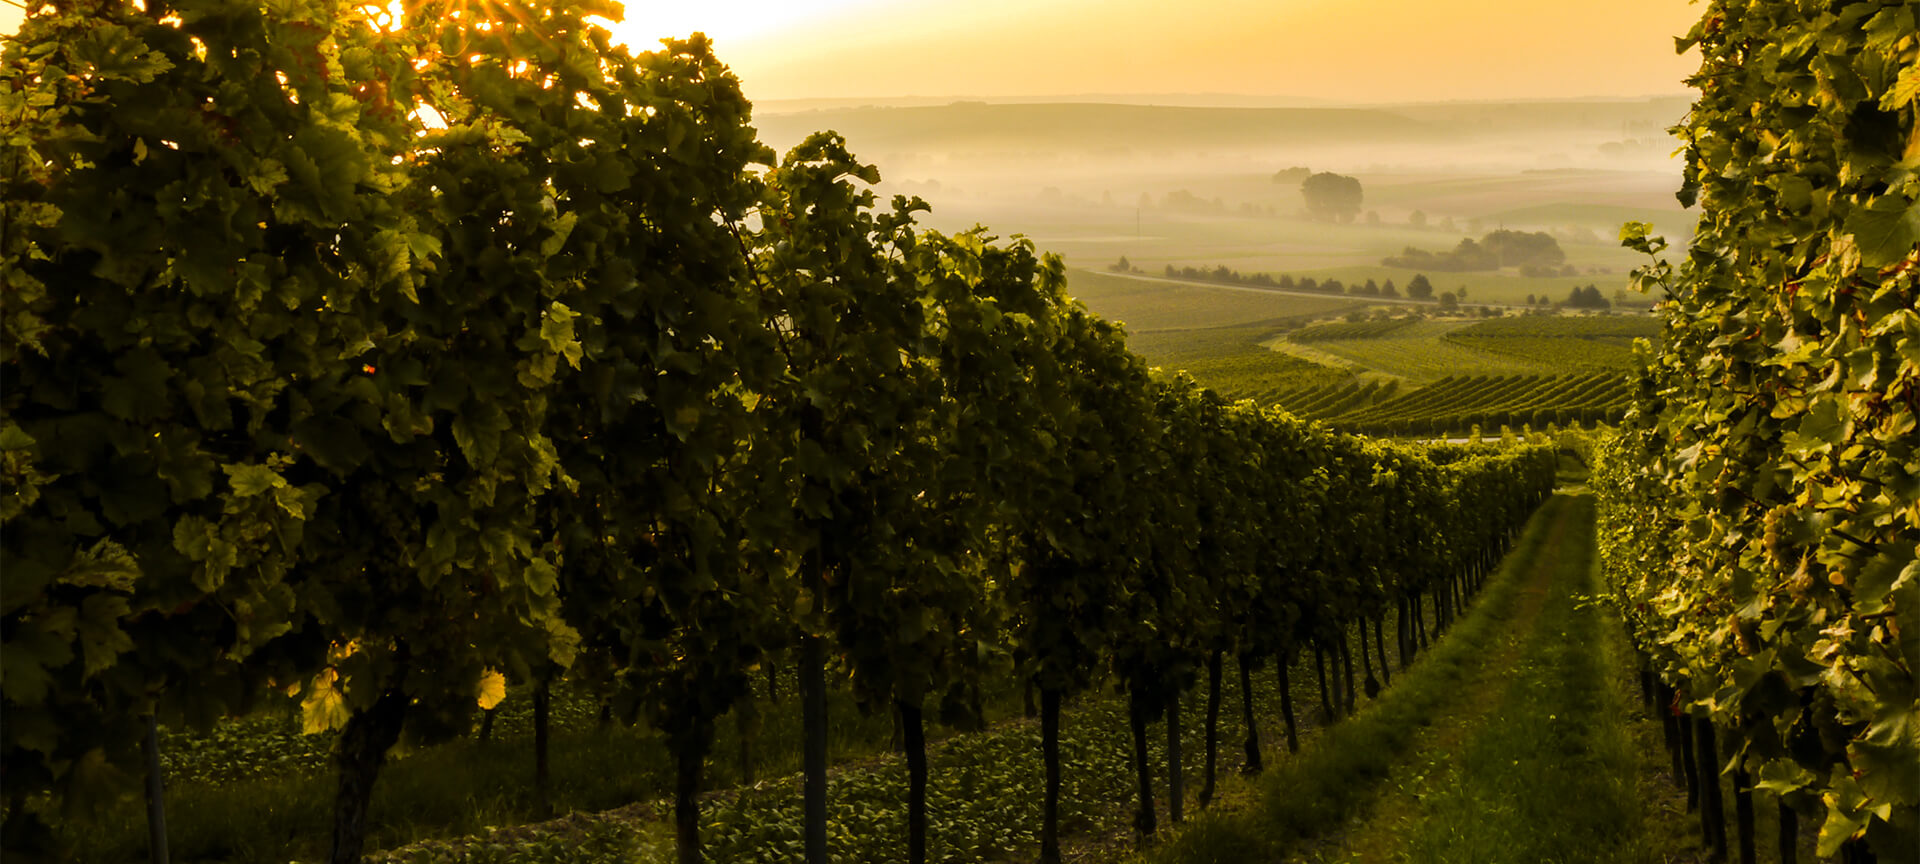 The Rhone Valley :  The 2nd largest French AOC wine area